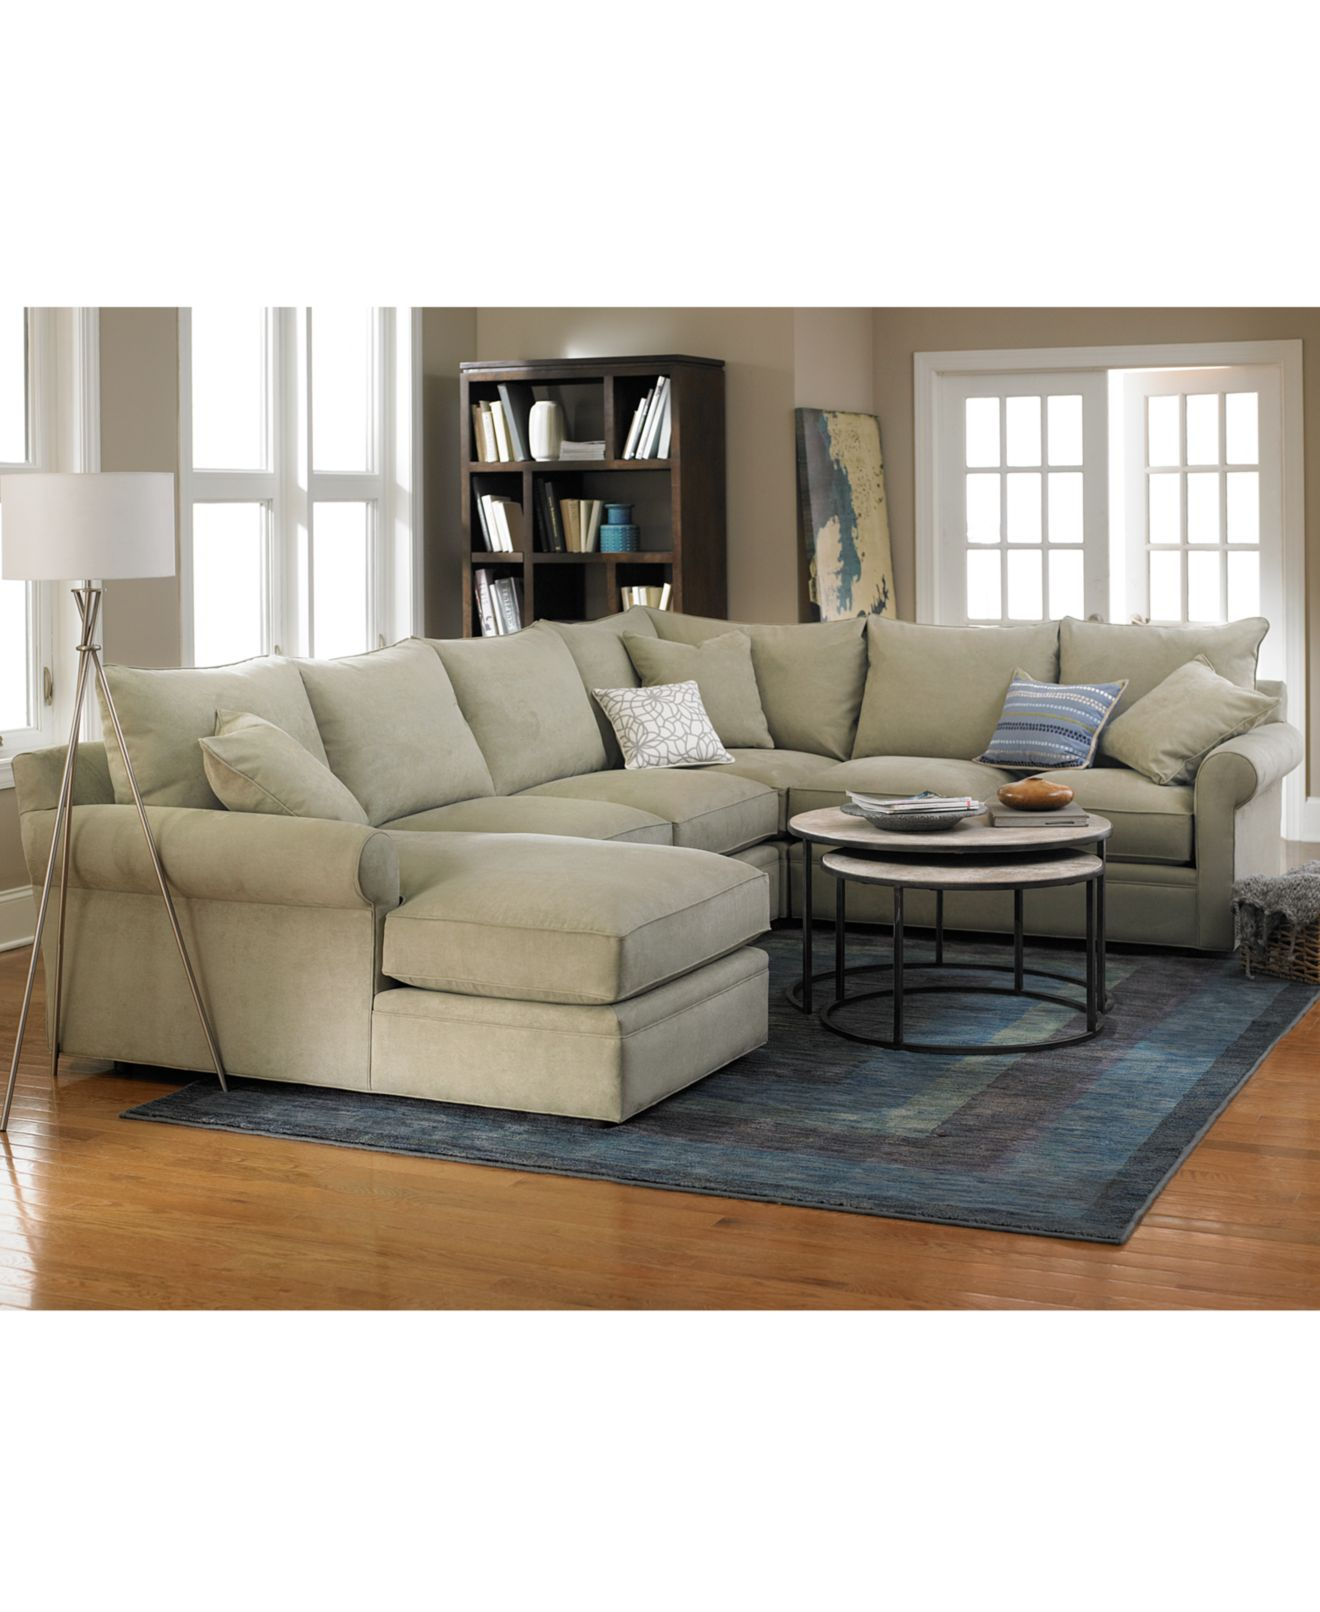 Macys Living Room Sets – Modern House